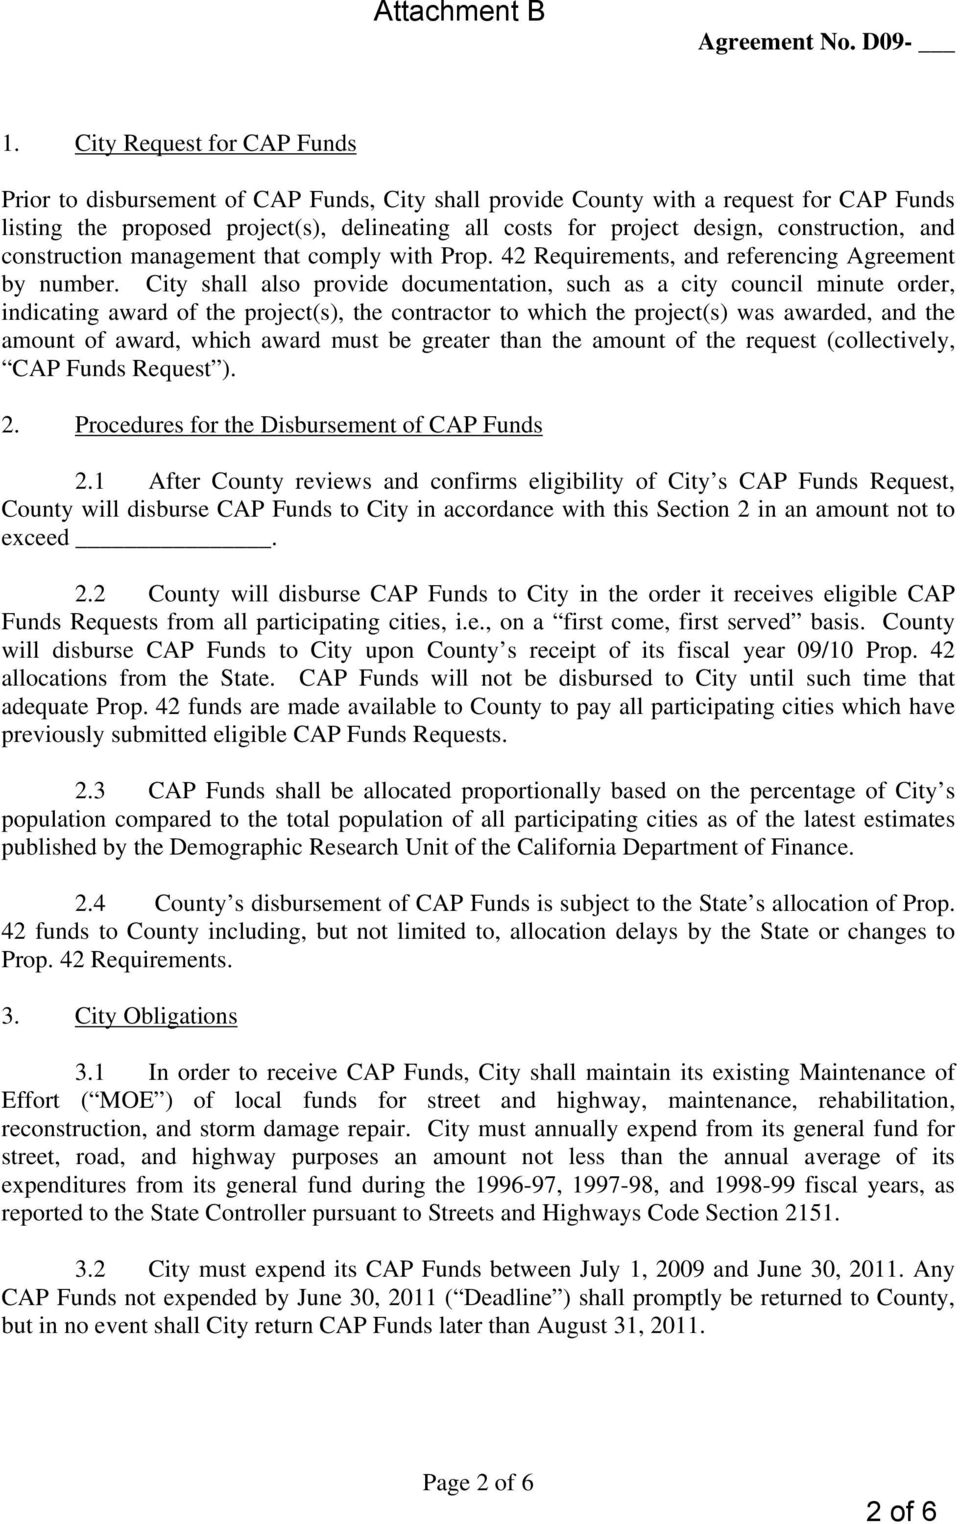 City shall also provide documentation, such as a city council minute order, indicating award of the project(s), the contractor to which the project(s) was awarded, and the amount of award, which